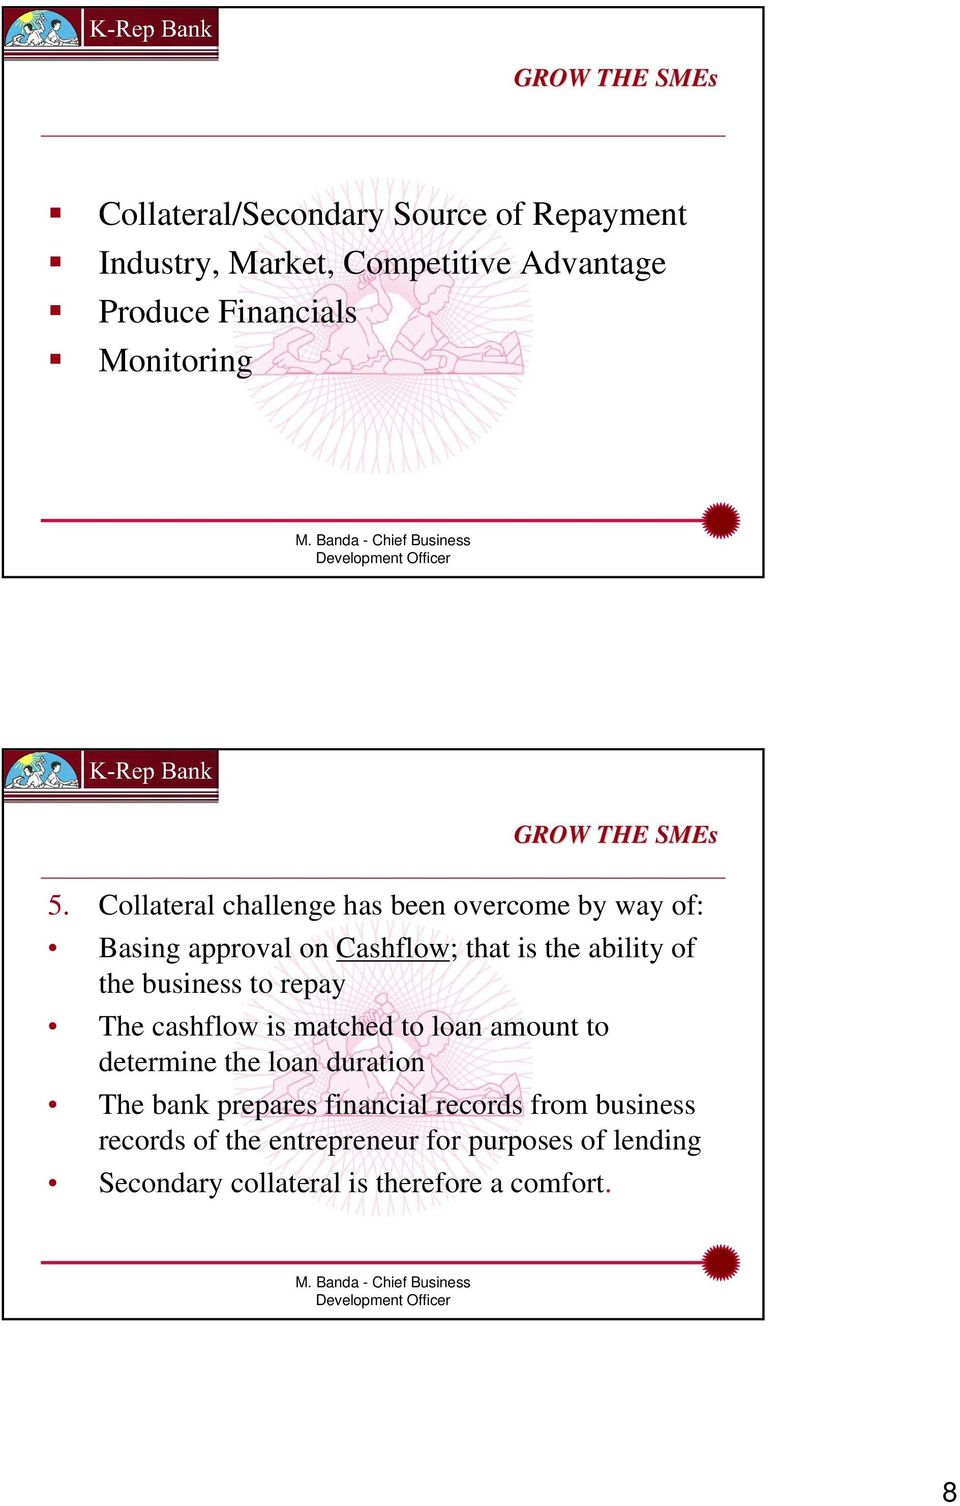 Collateral challenge has been overcome by way of: Basing approval on Cashflow; that is the ability of the business to